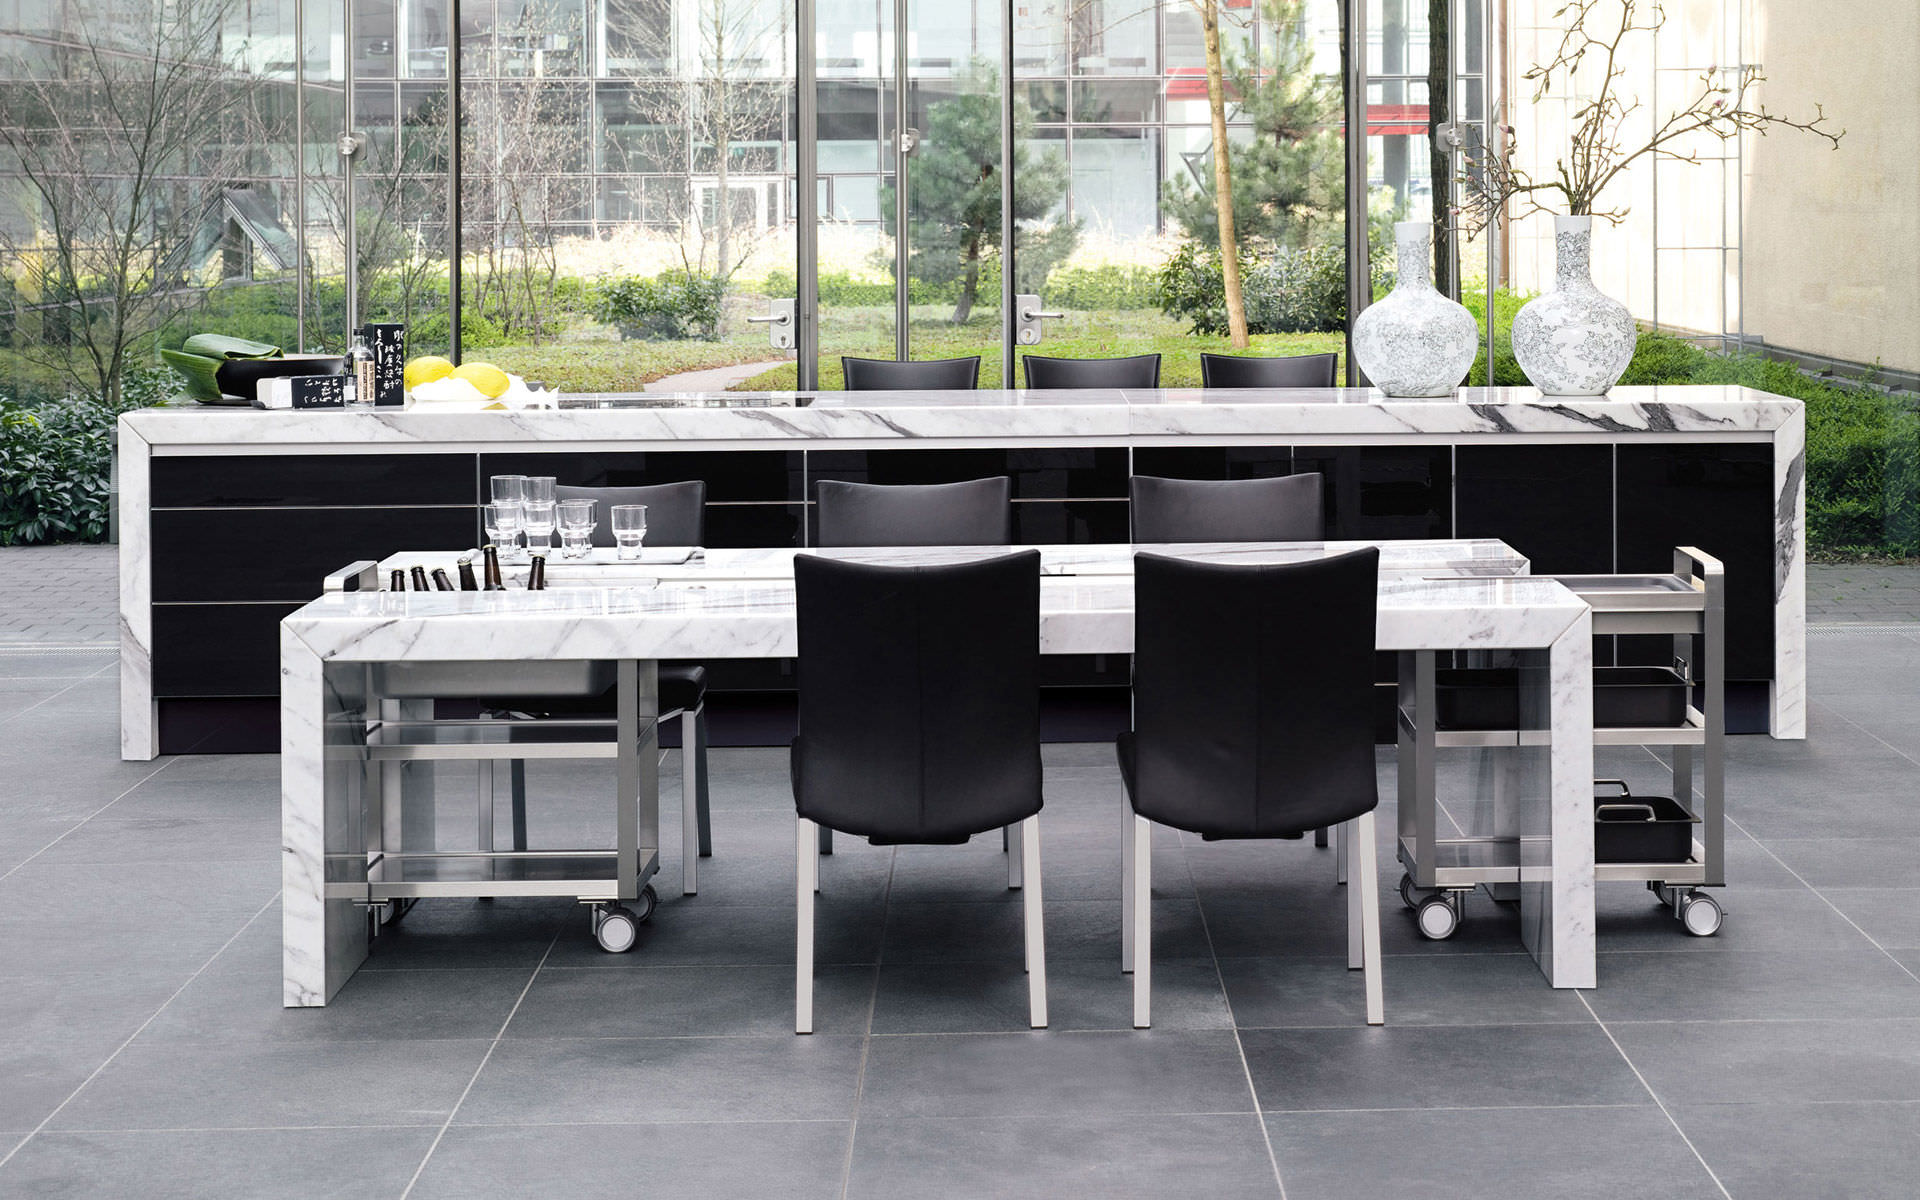 dining-table-contemporary-mdf-natural-stone-49455-4780267.jpg